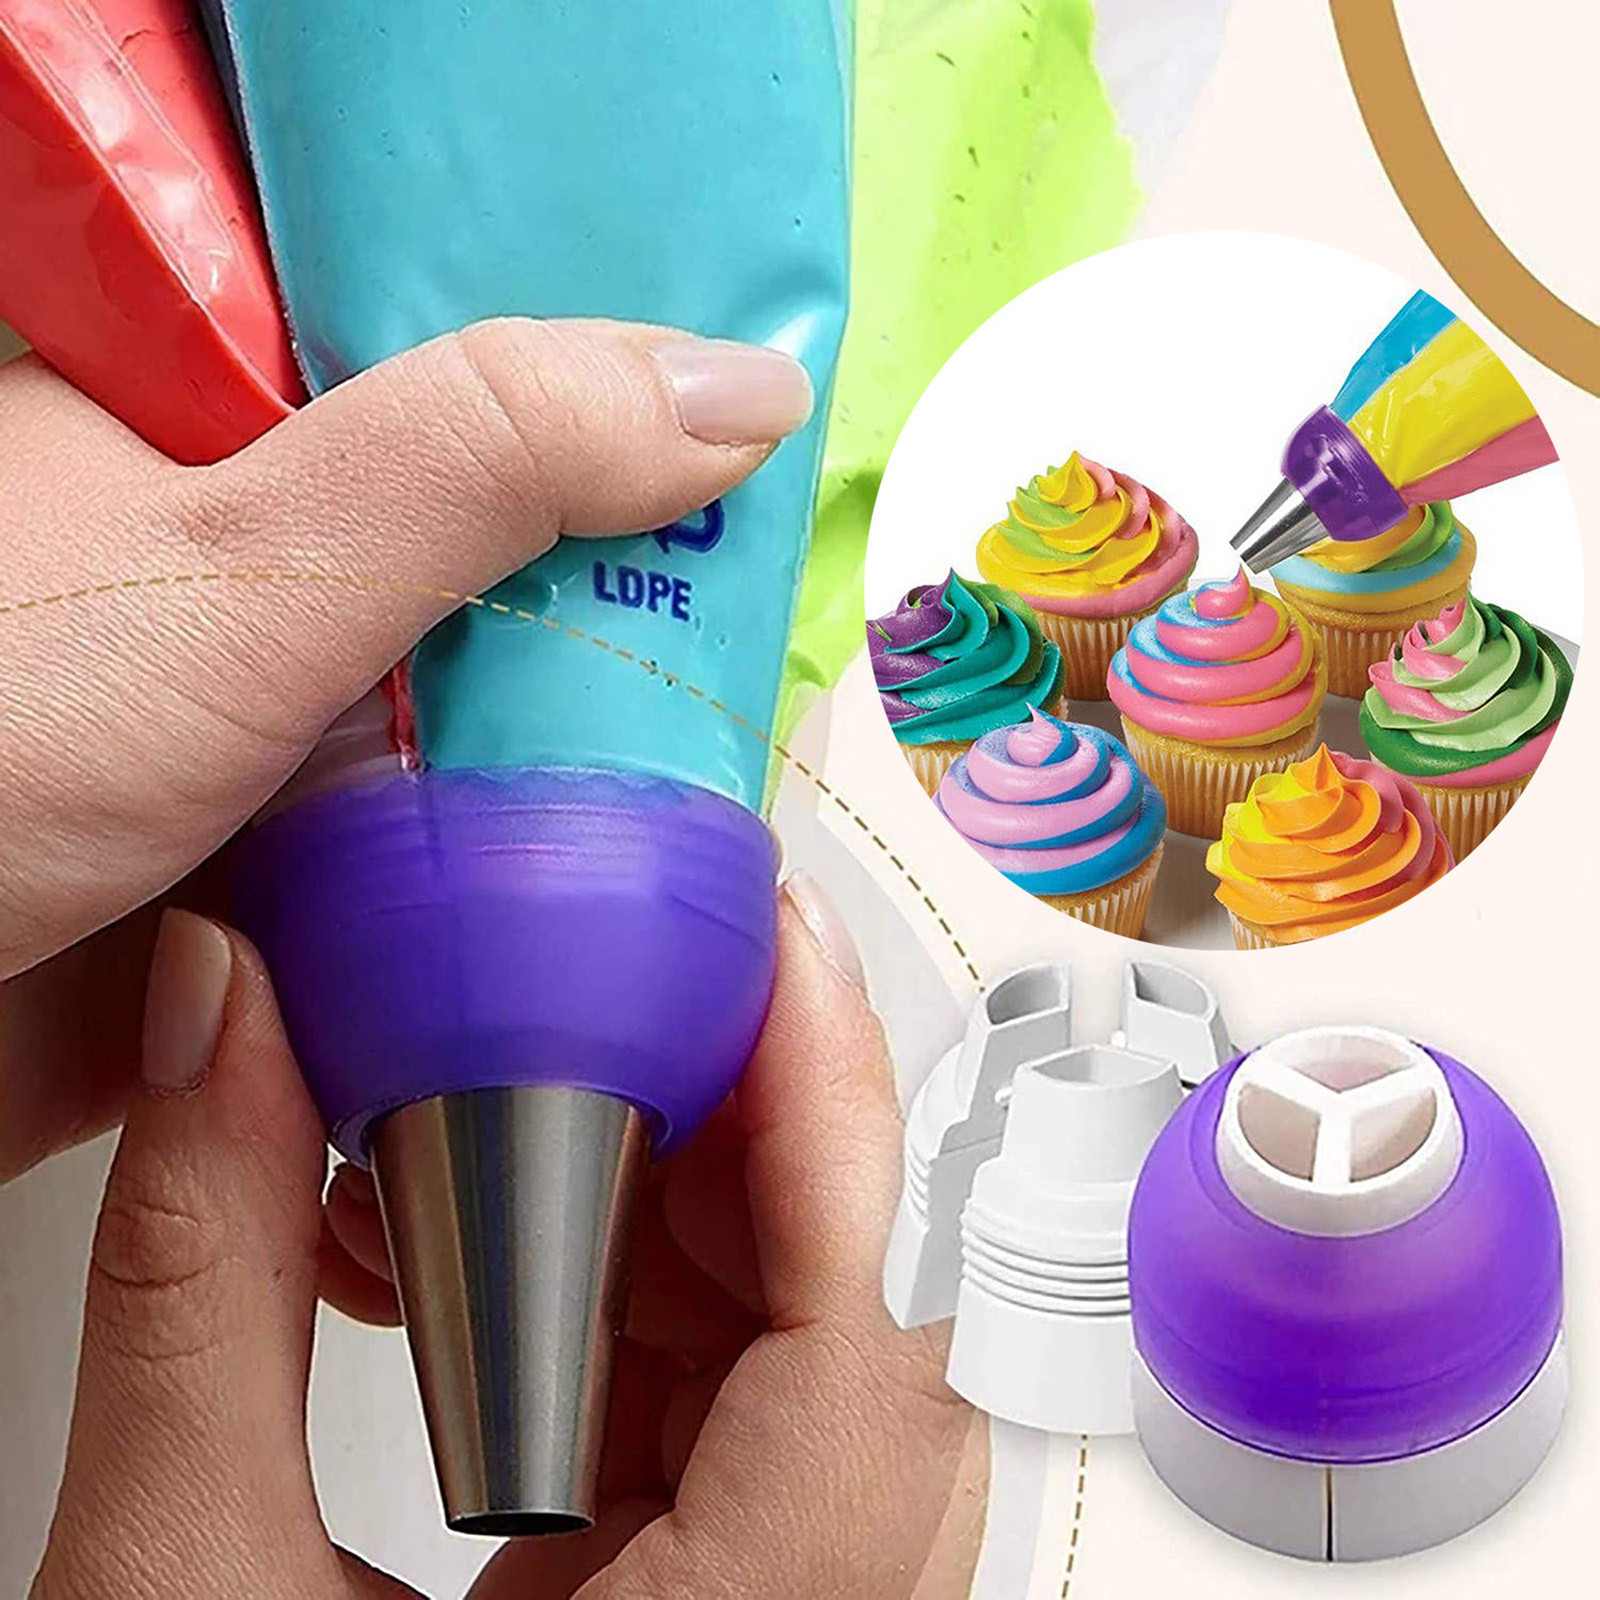 Icing Piping Bag Russian Nozzle Converter Coupler Cake Cream Pastry Bag Nozzle Adapter For Cupcake Fondant Cookie Baking Kitchen